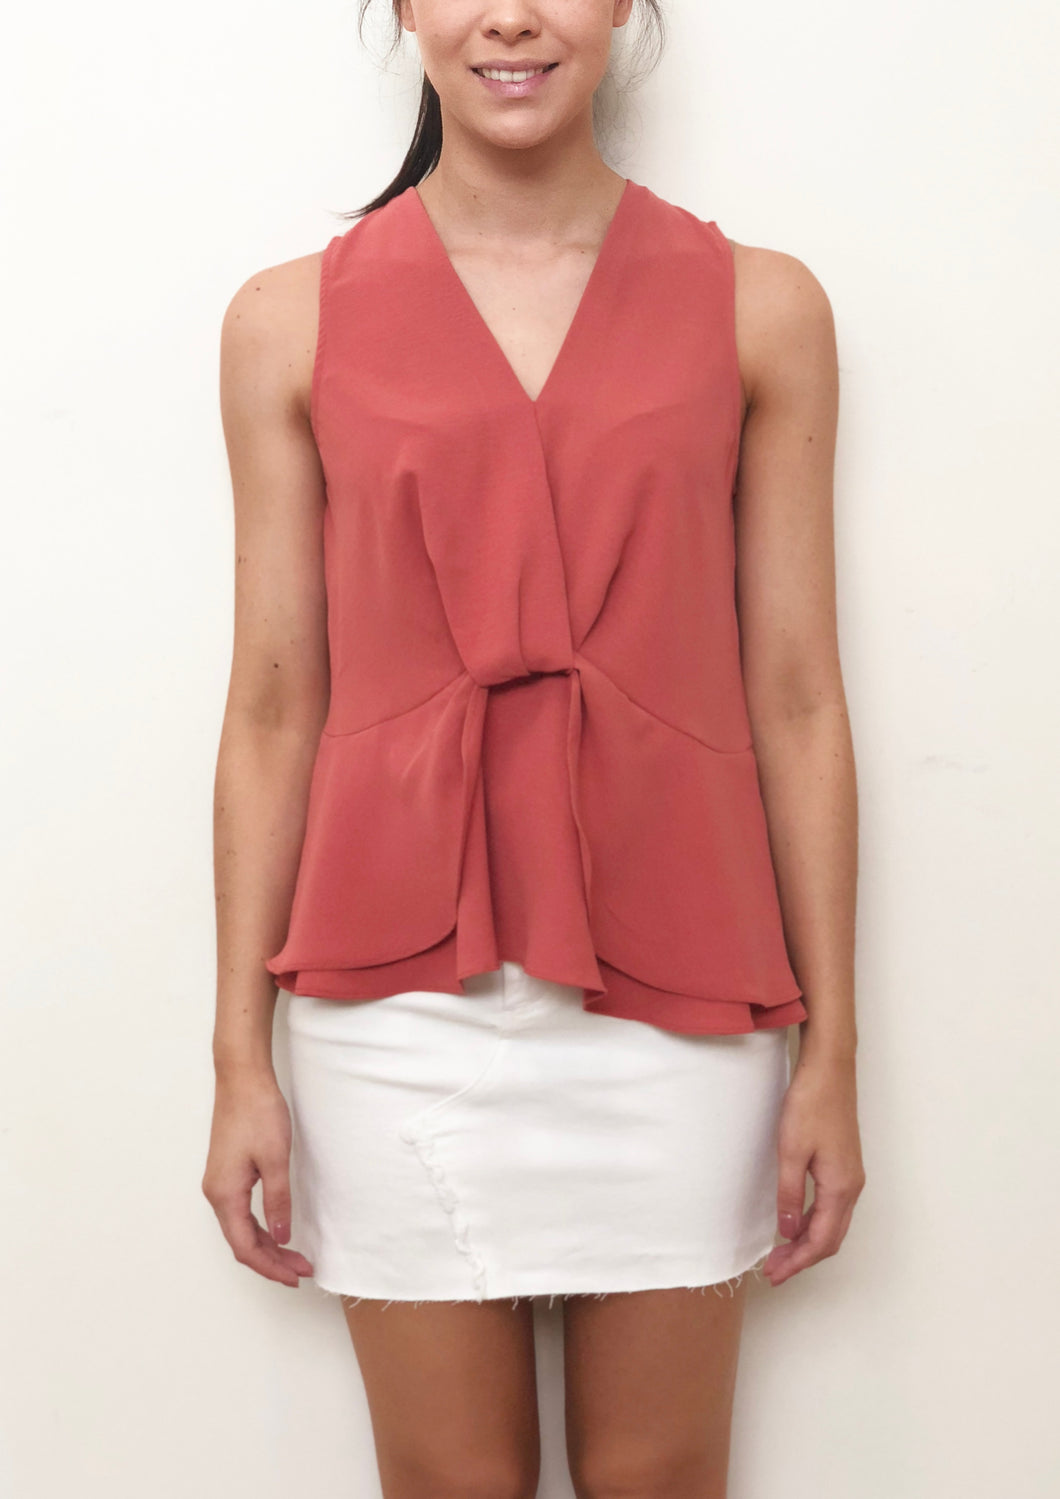 SS022SS V Neck Peplum Layered Top (Pack) On Sale